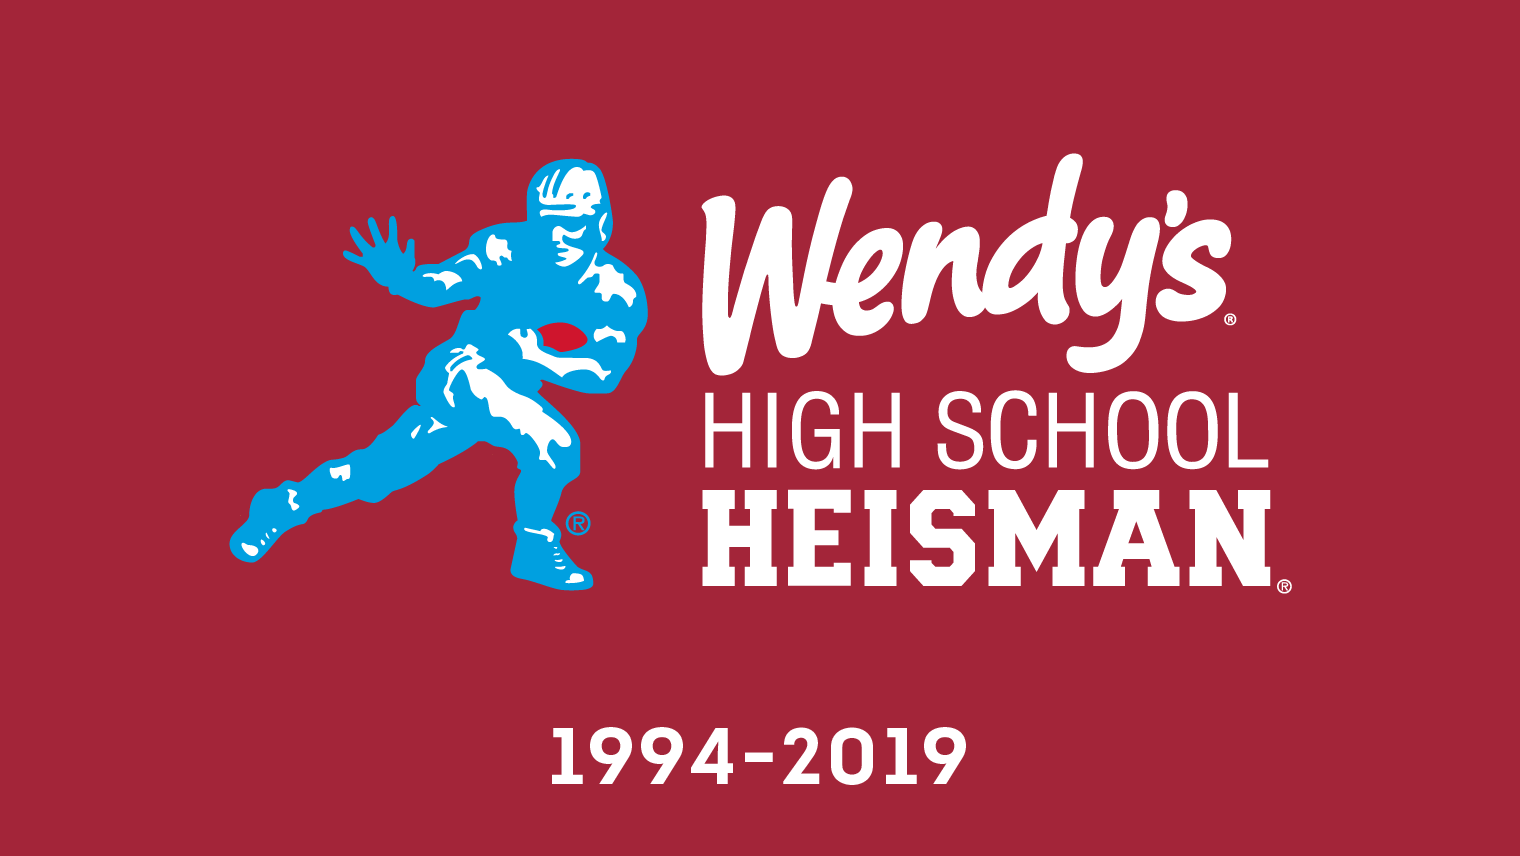 Dave Thomas created the Wendy's High School Heisman scholarship in 1994. Over the past 25 years we've had the opportunity and honor of getting to know the most esteemed high school athletes and are honored.